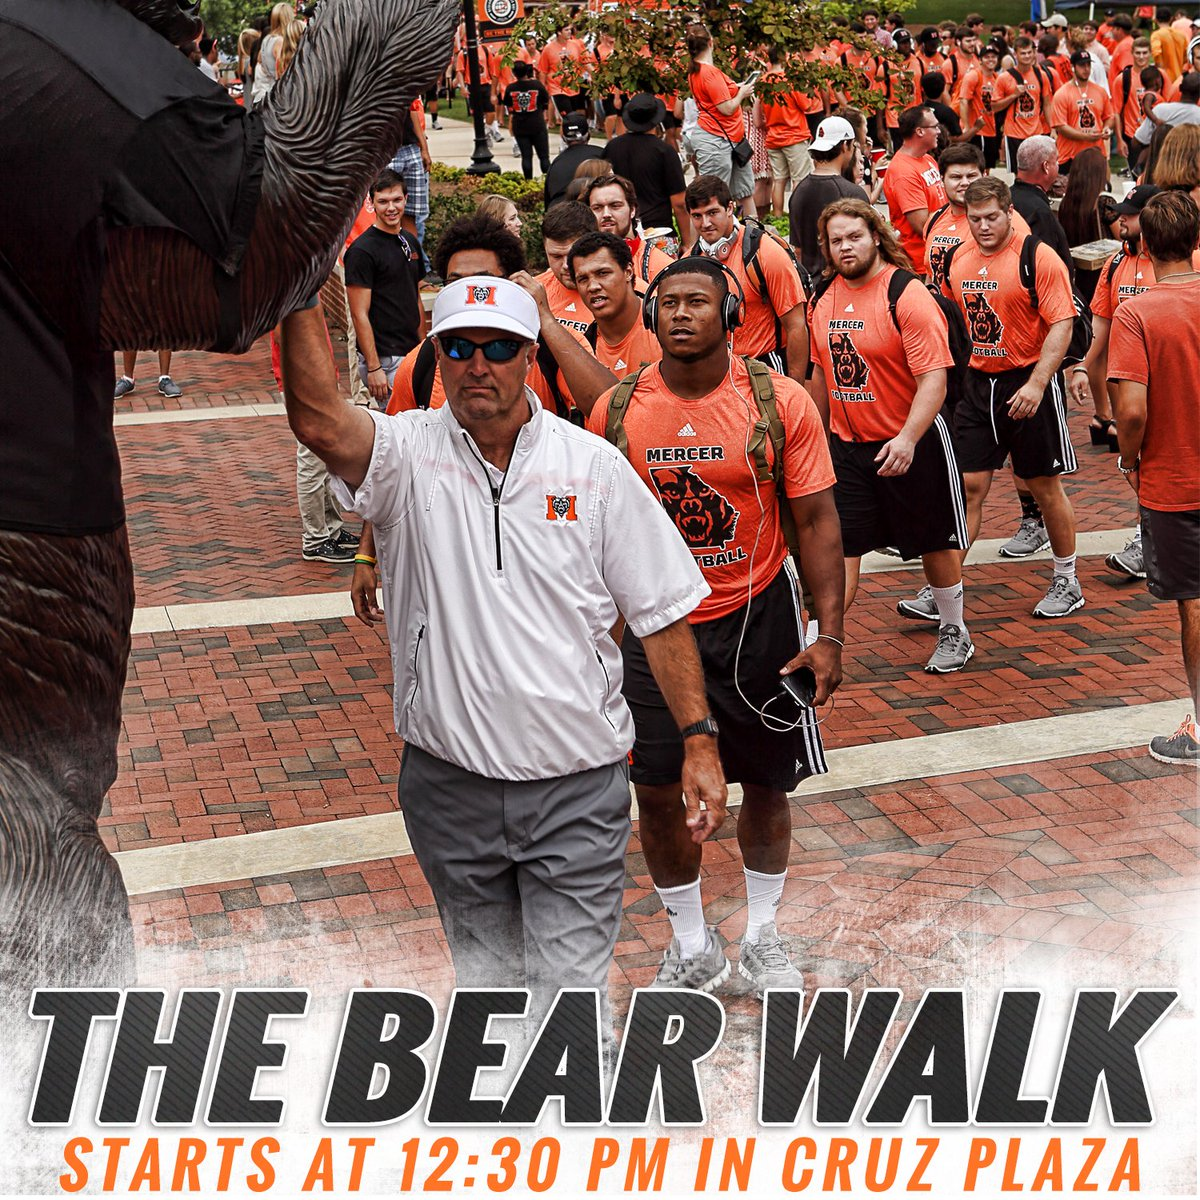 Just two hours away from a special #MercerHC15 Bear Walk! Cheer on the team at 12:30 PM in Cruz Plaza! #BeatVMI https://t.co/BeaiBZzmtK